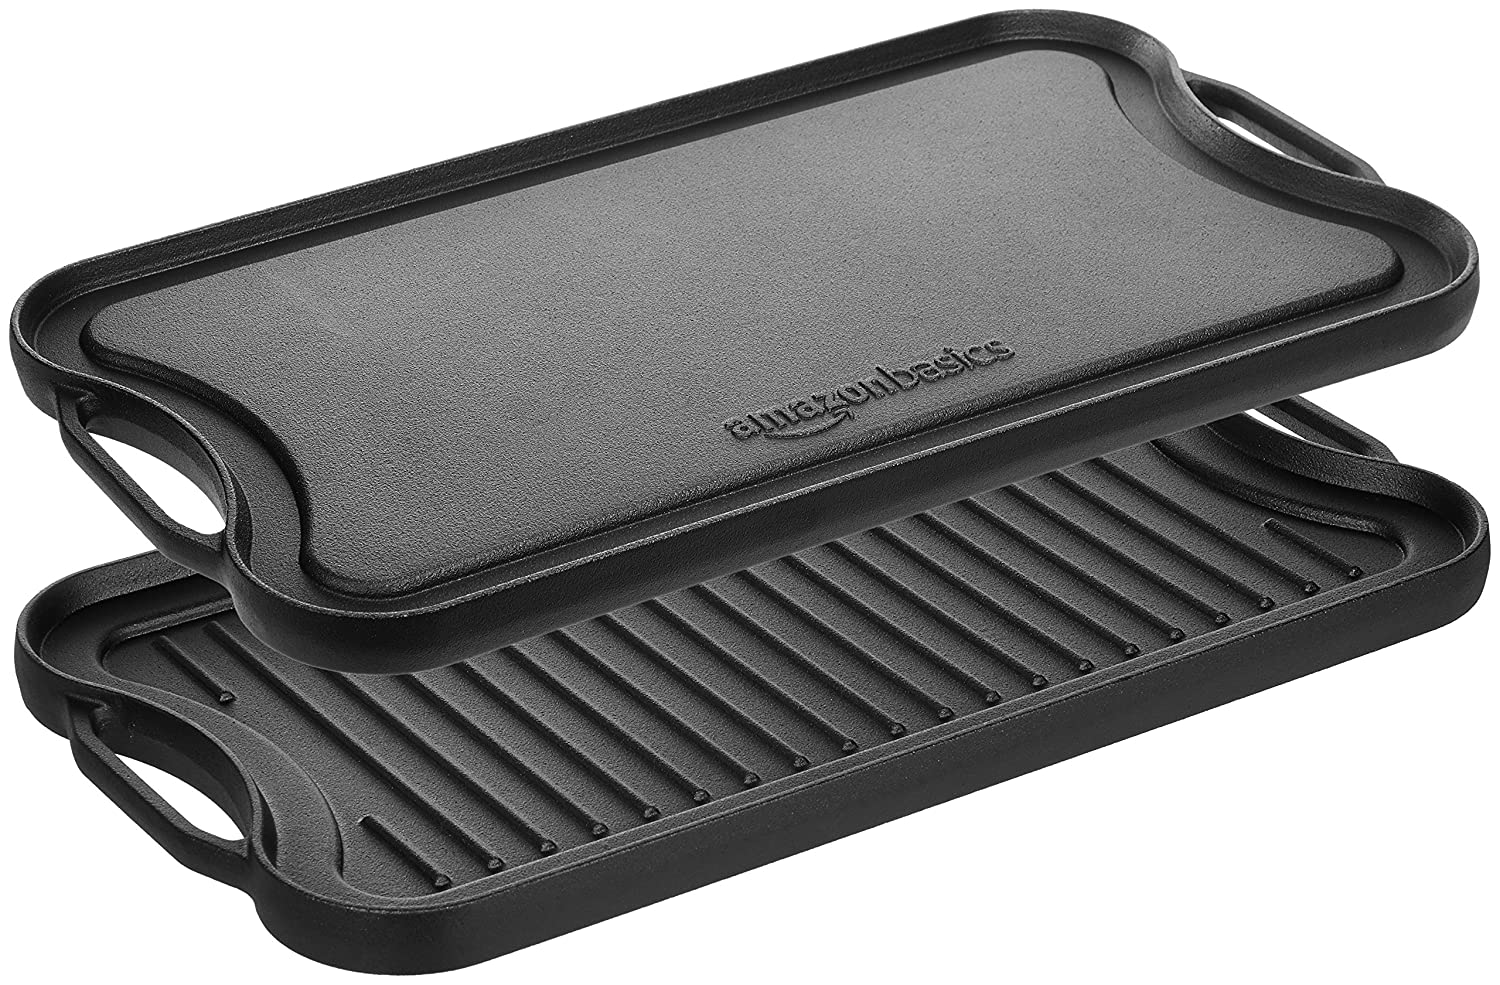 AmazonBasics Pre-Seasoned Cast Iron Reversible Grill/Griddle -(5204)